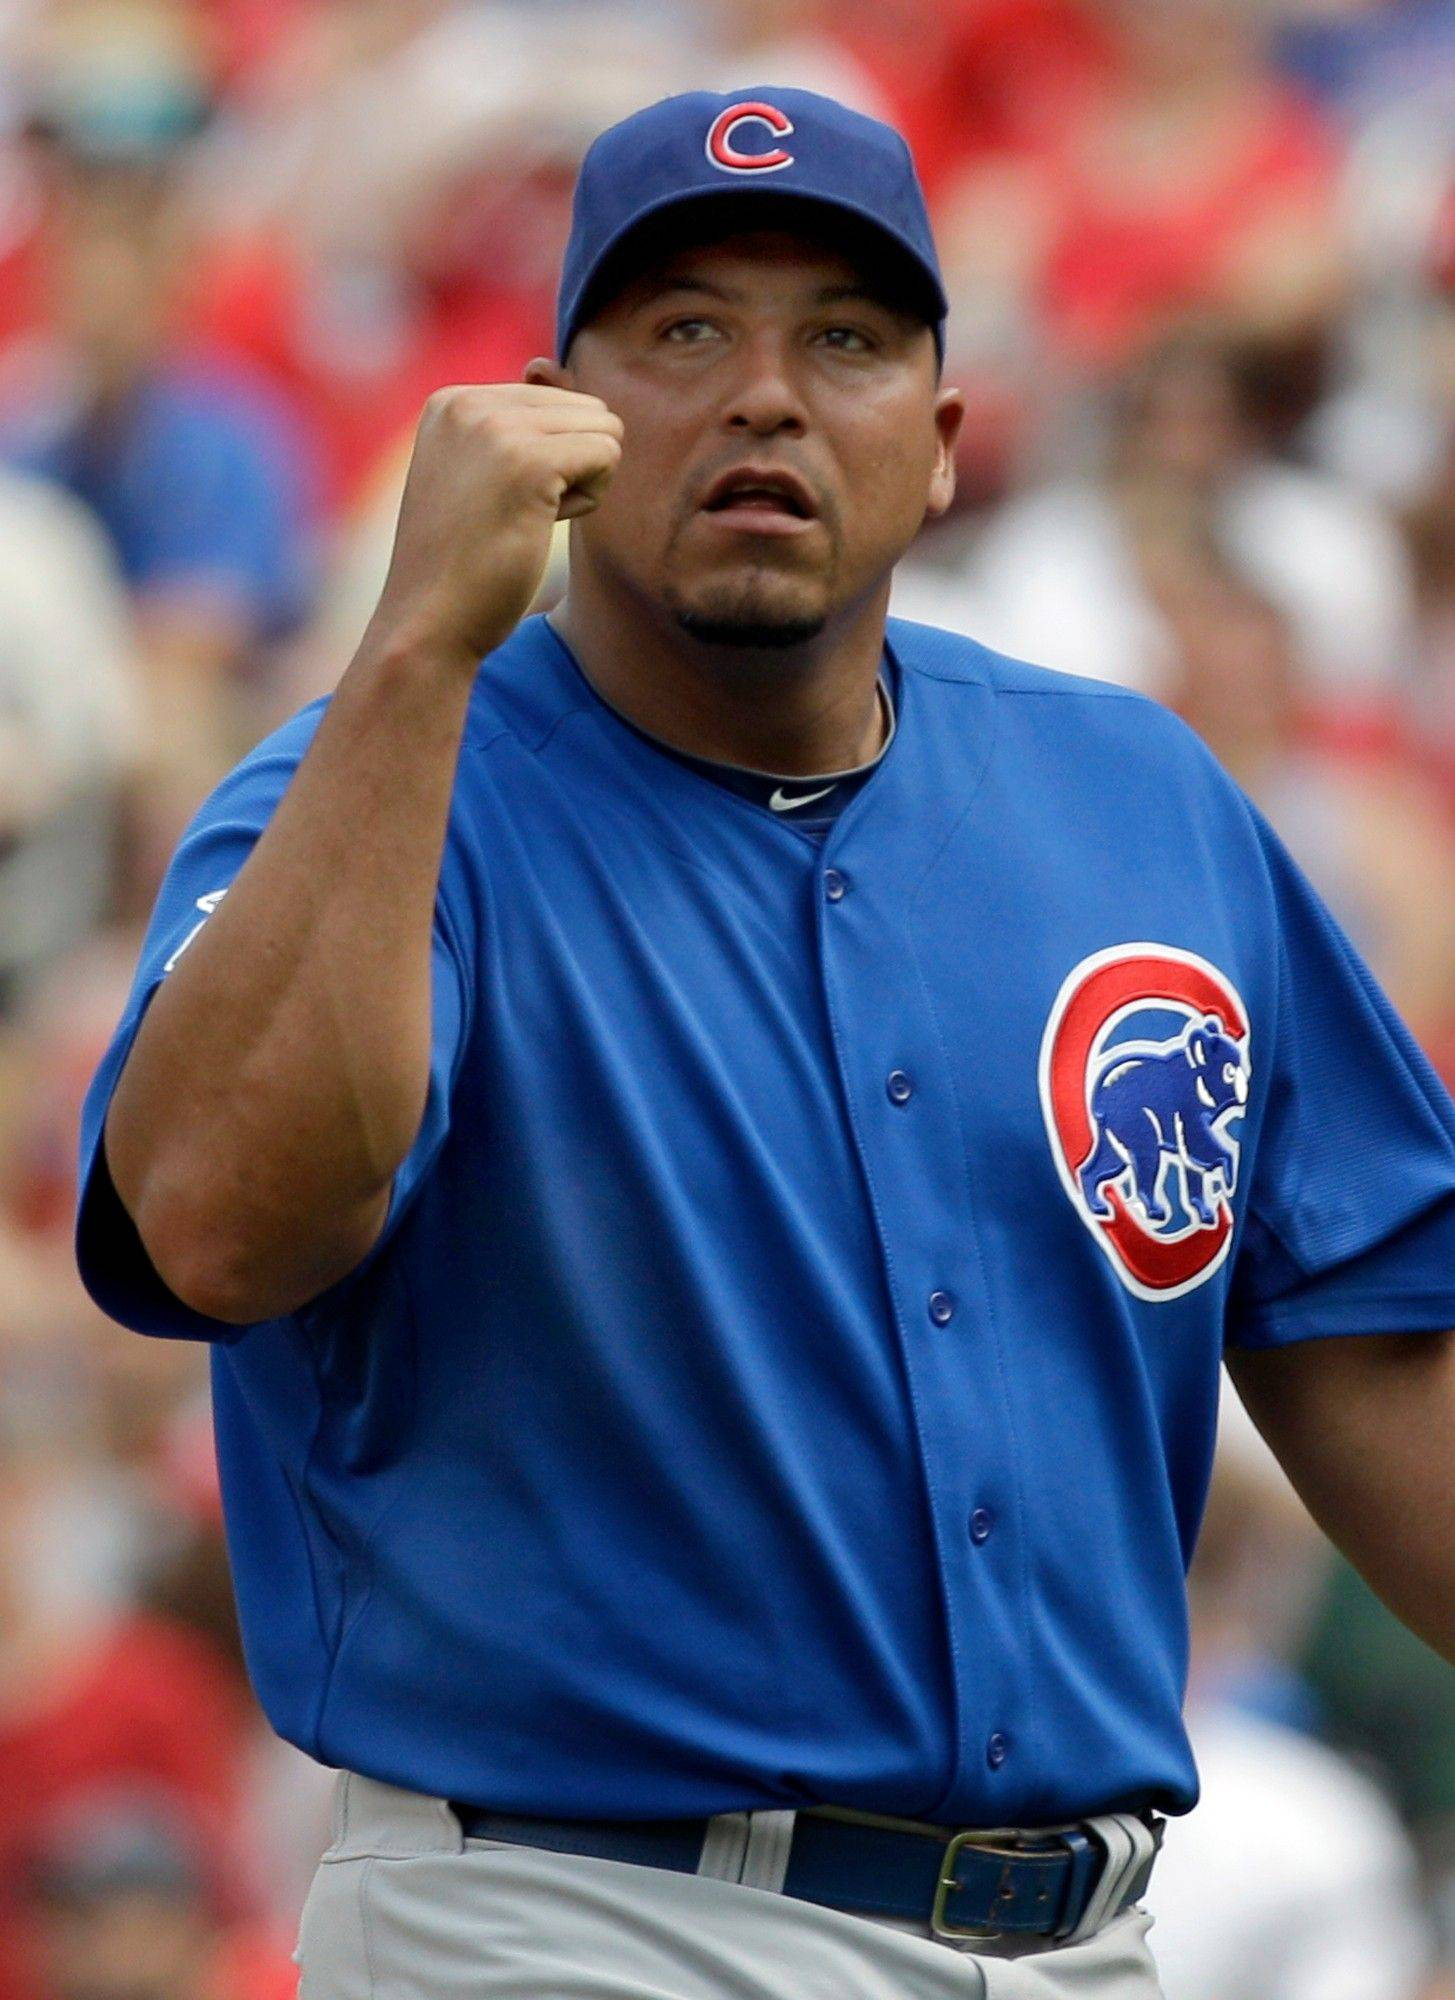 Carlos Zambrano wasn't happy Sunday after losing a second straight chance for a win because of a blown save.